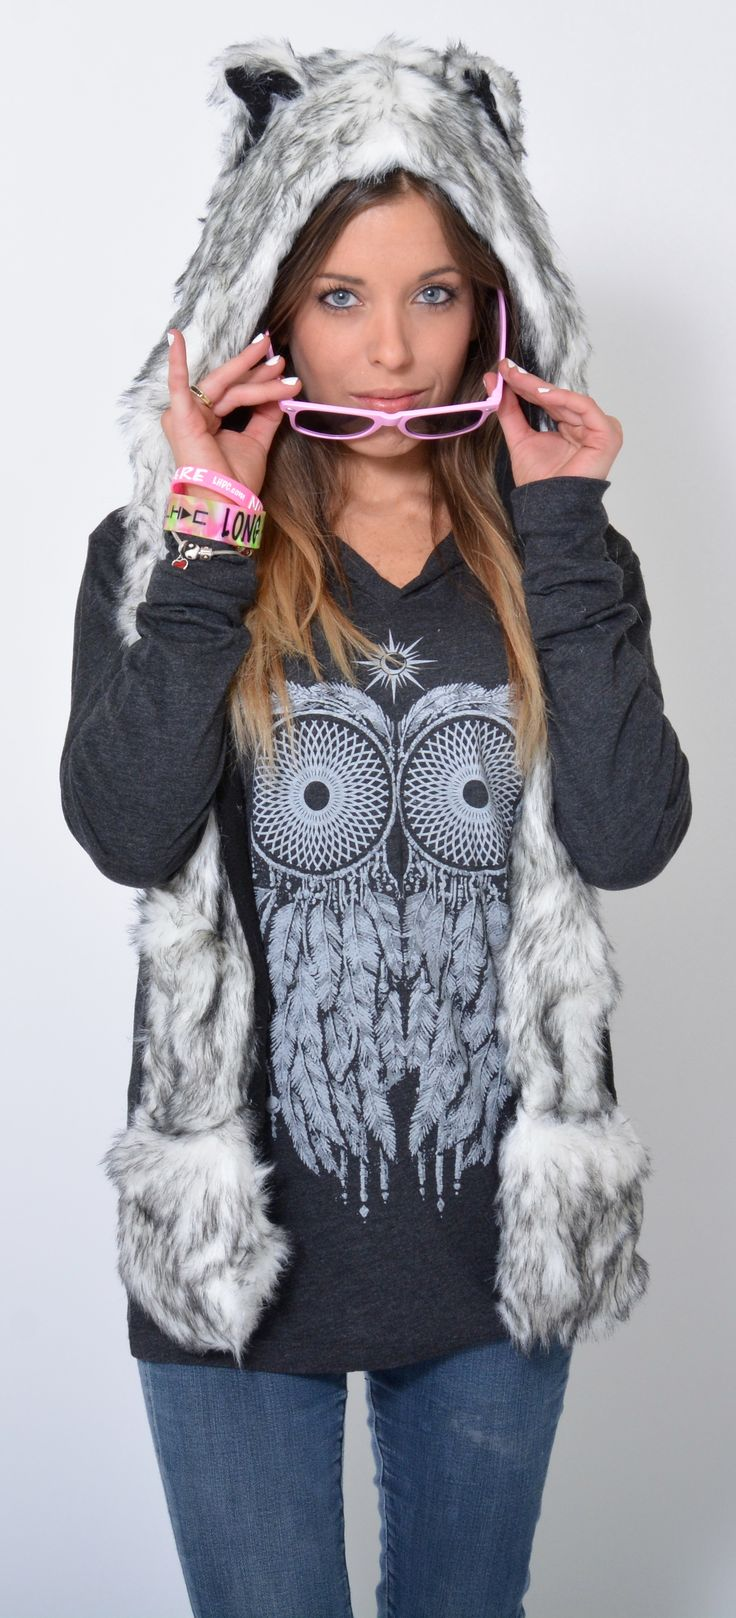 Dream Owl Hoodies!